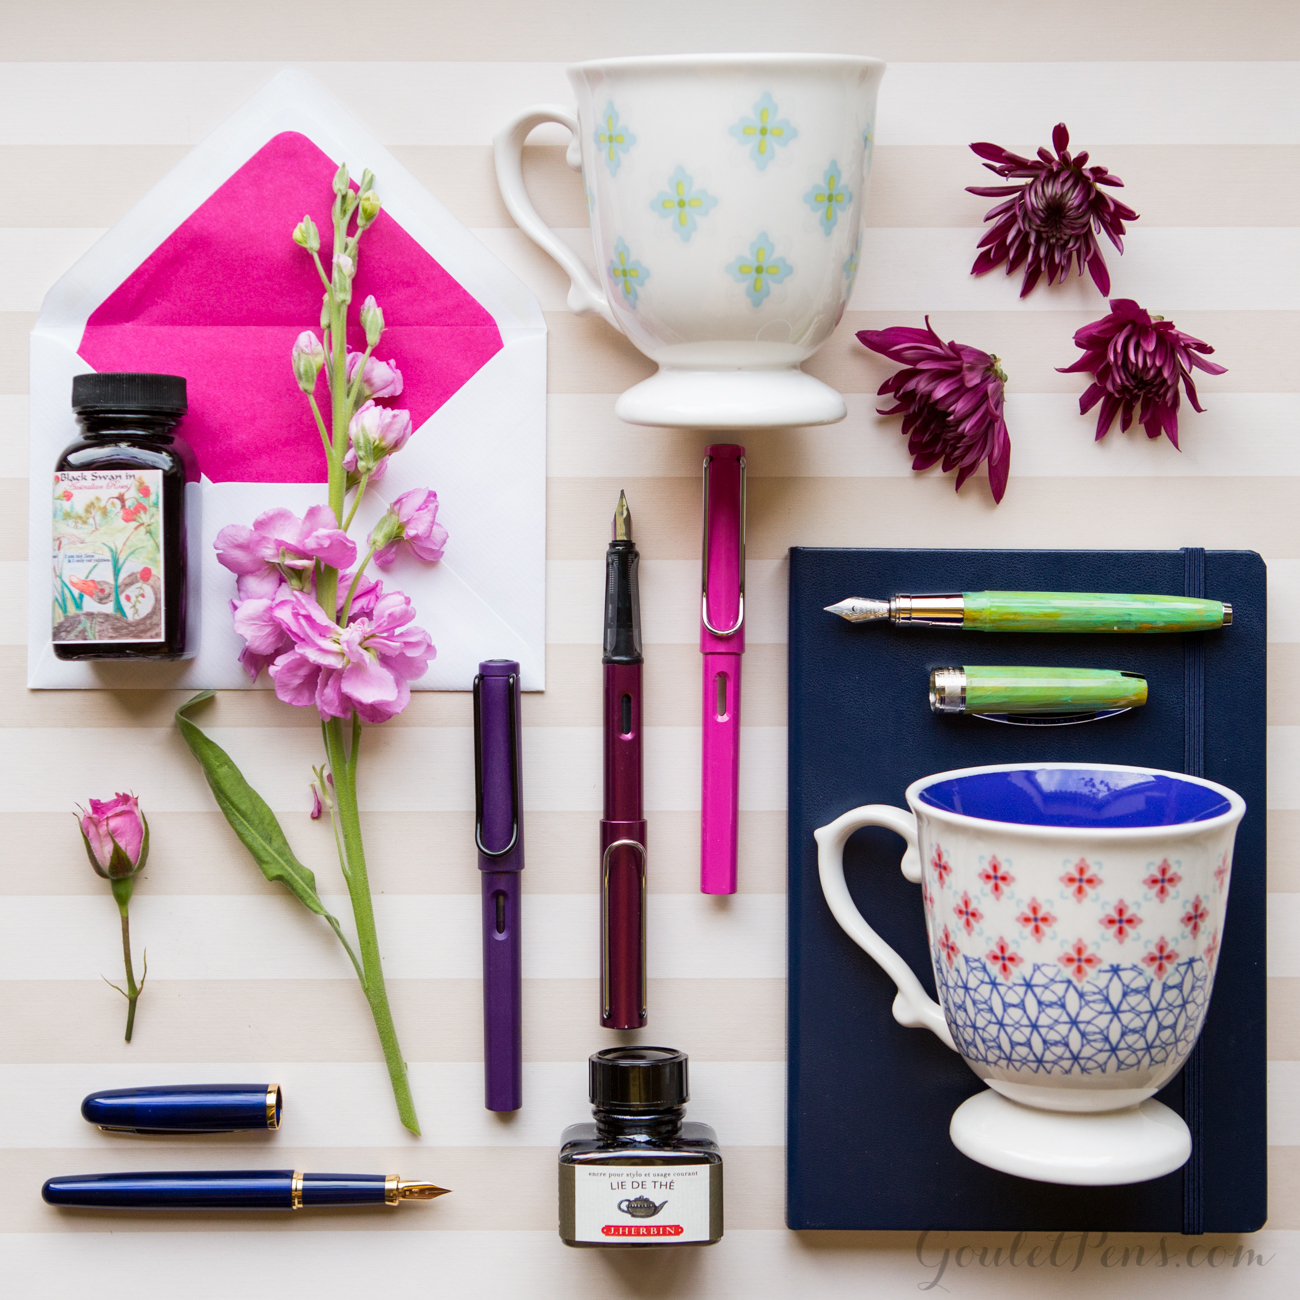 A tea party themed flat lay arrangement of fountain pens, notebooks, and ink in an array of pink, purple, and floral hues.